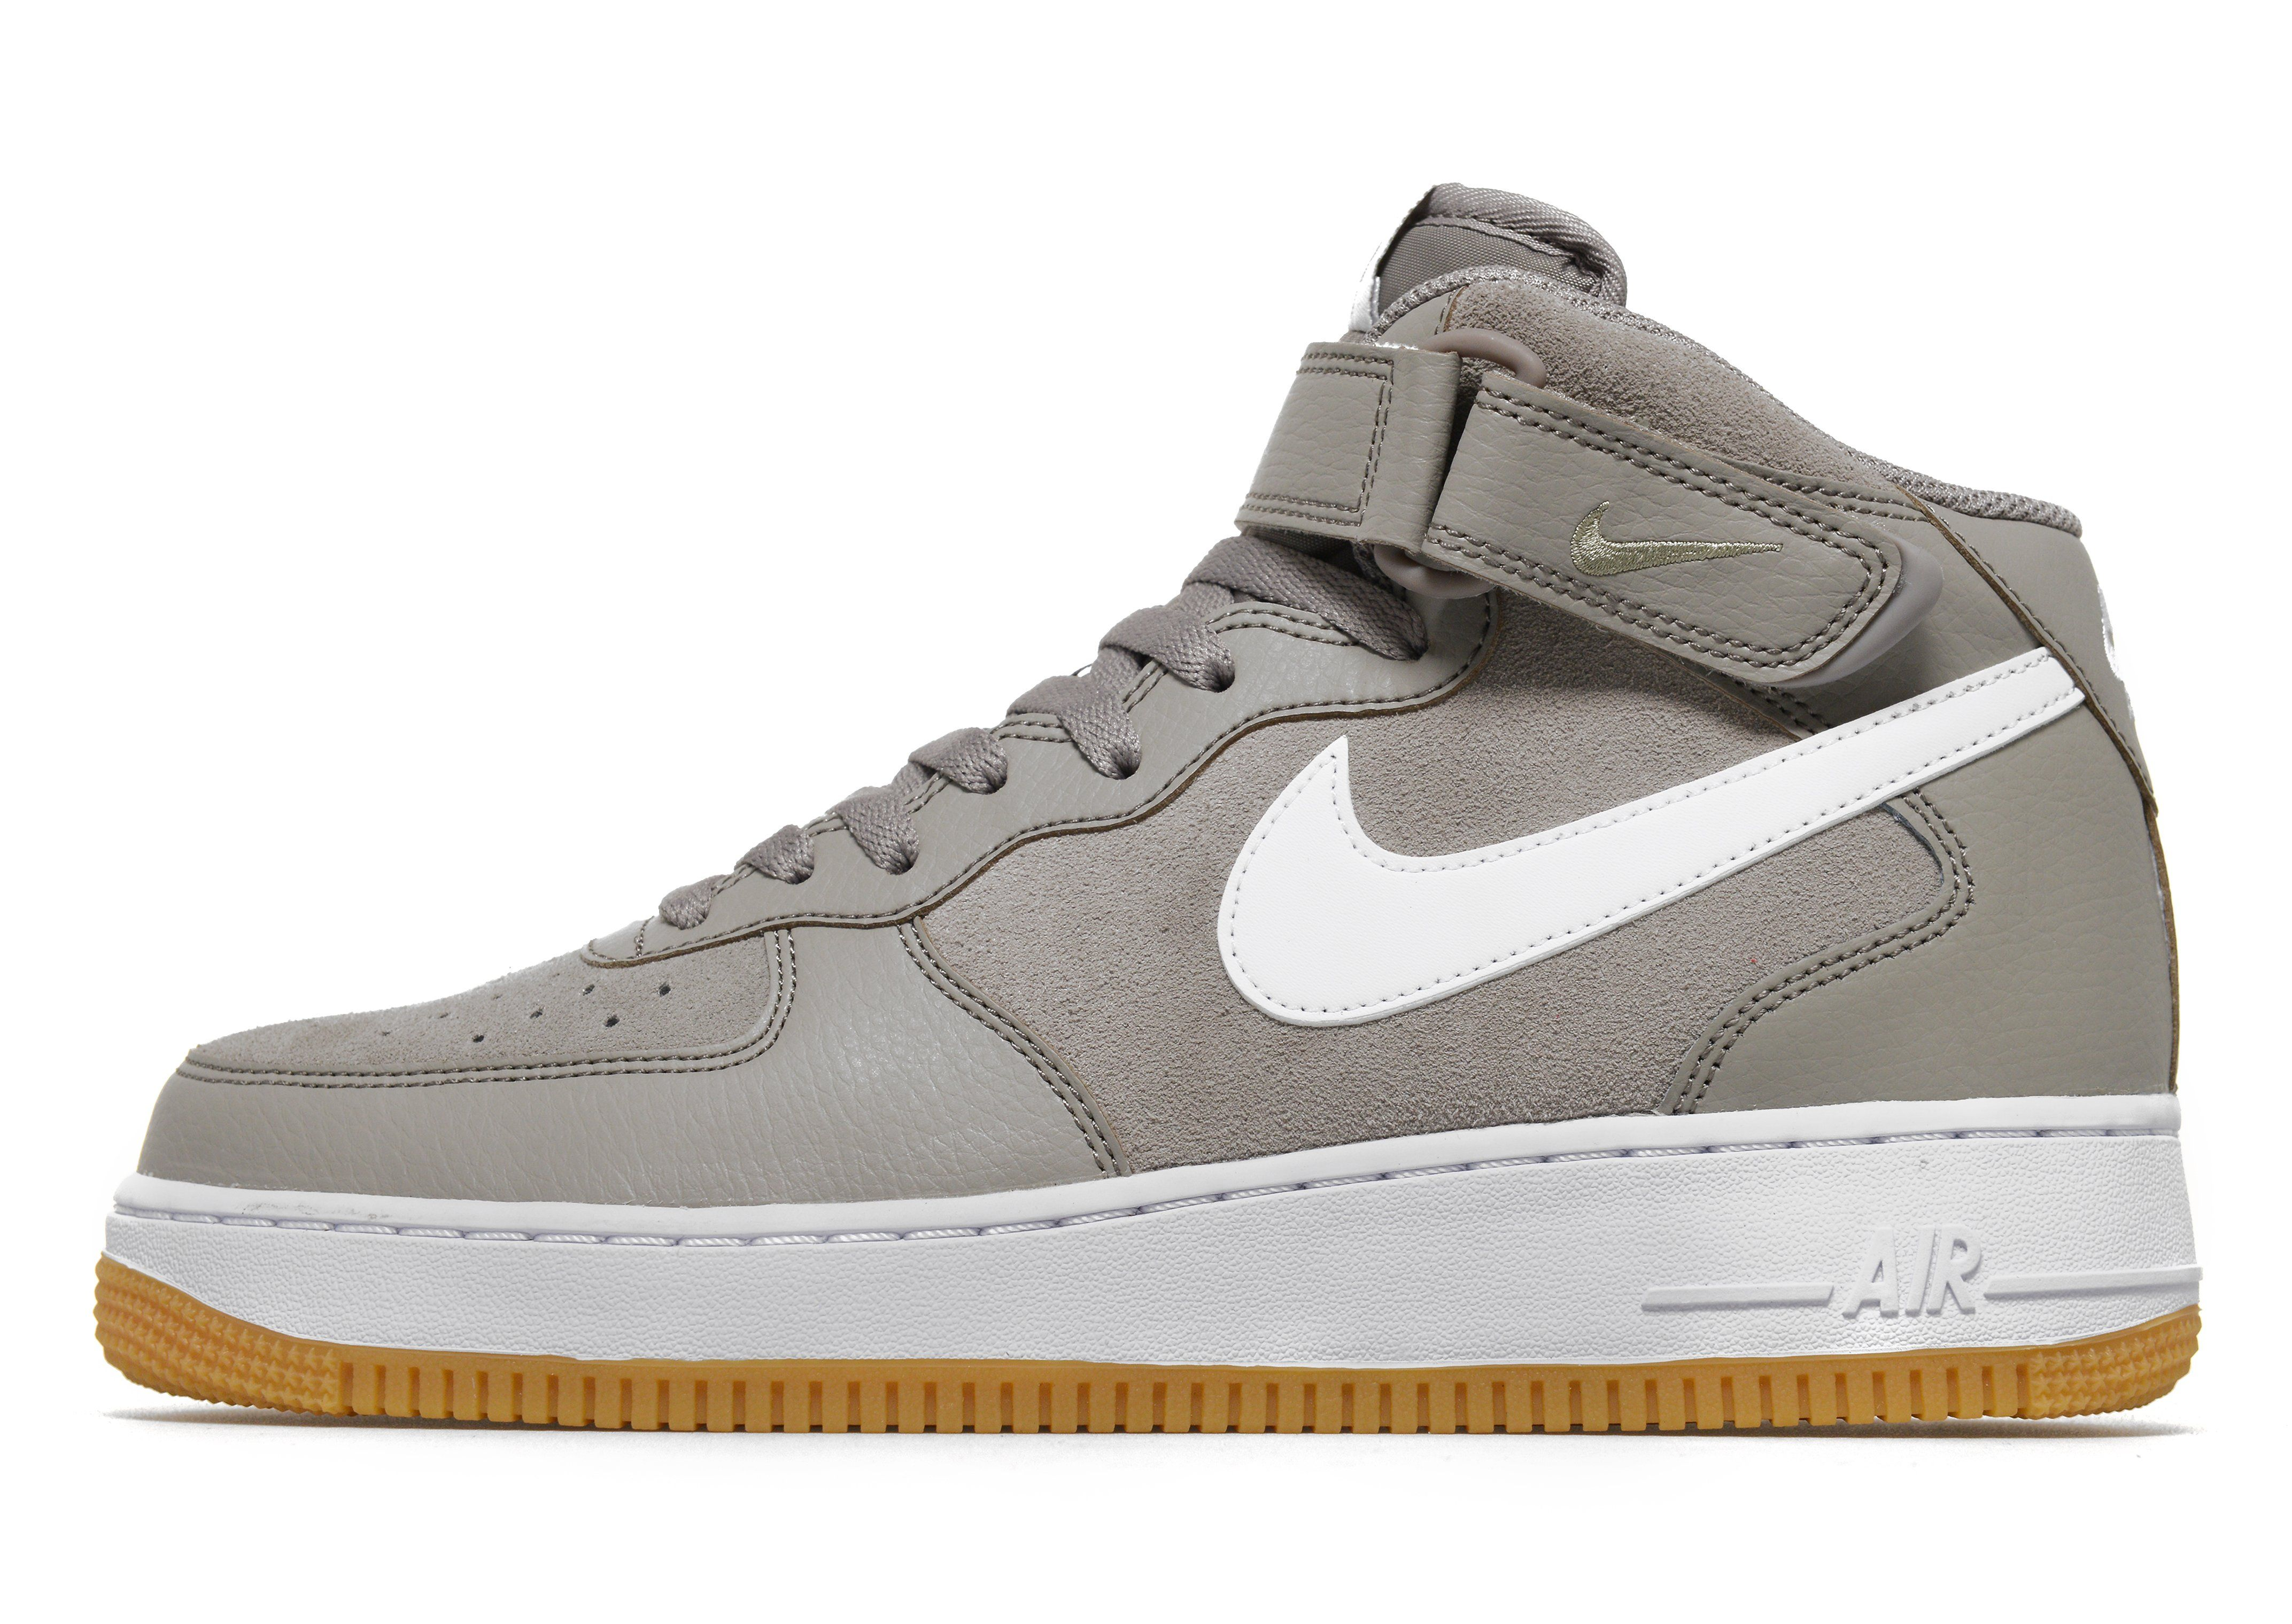 huge selection of d2c99 6b303 ... high-quality Nike Air Force 1 Mid JD Sports ...